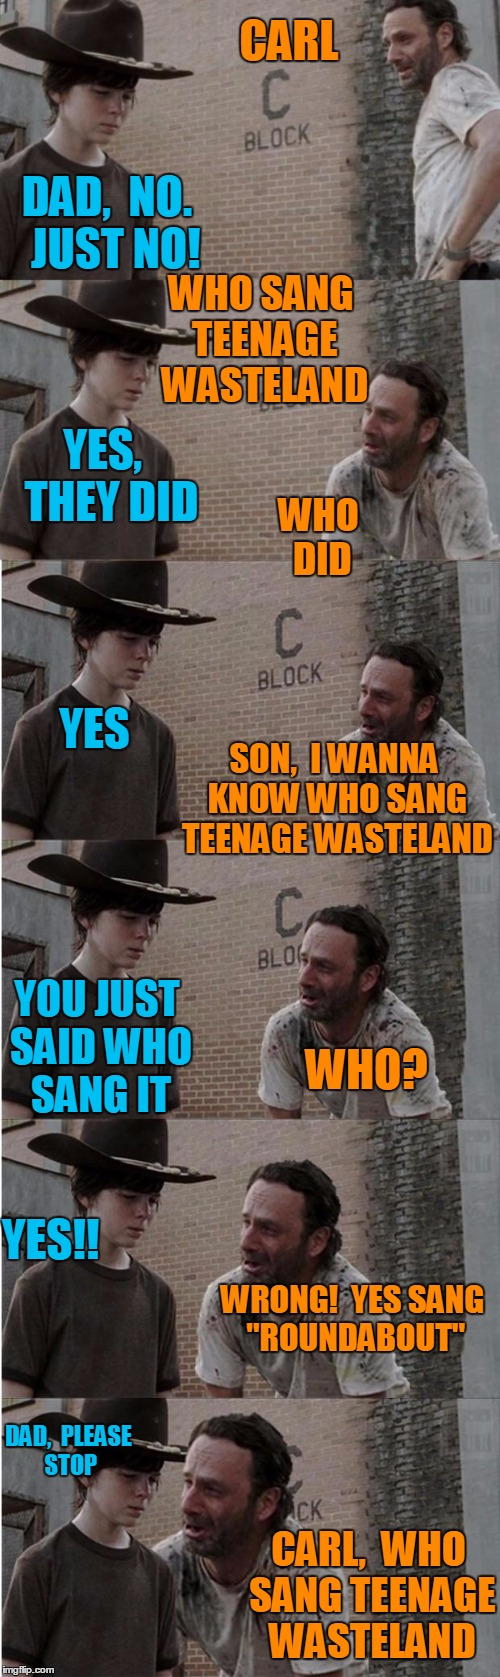 "It only took me 10 minutes to make this one! |  CARL; DAD,  NO.  JUST NO! WHO SANG TEENAGE WASTELAND; YES,  THEY DID; WHO DID; YES; SON,  I WANNA KNOW WHO SANG TEENAGE WASTELAND; YOU JUST SAID WHO SANG IT; WHO? YES!! WRONG!  YES SANG ""ROUNDABOUT""; DAD,  PLEASE STOP; CARL,  WHO SANG TEENAGE WASTELAND 